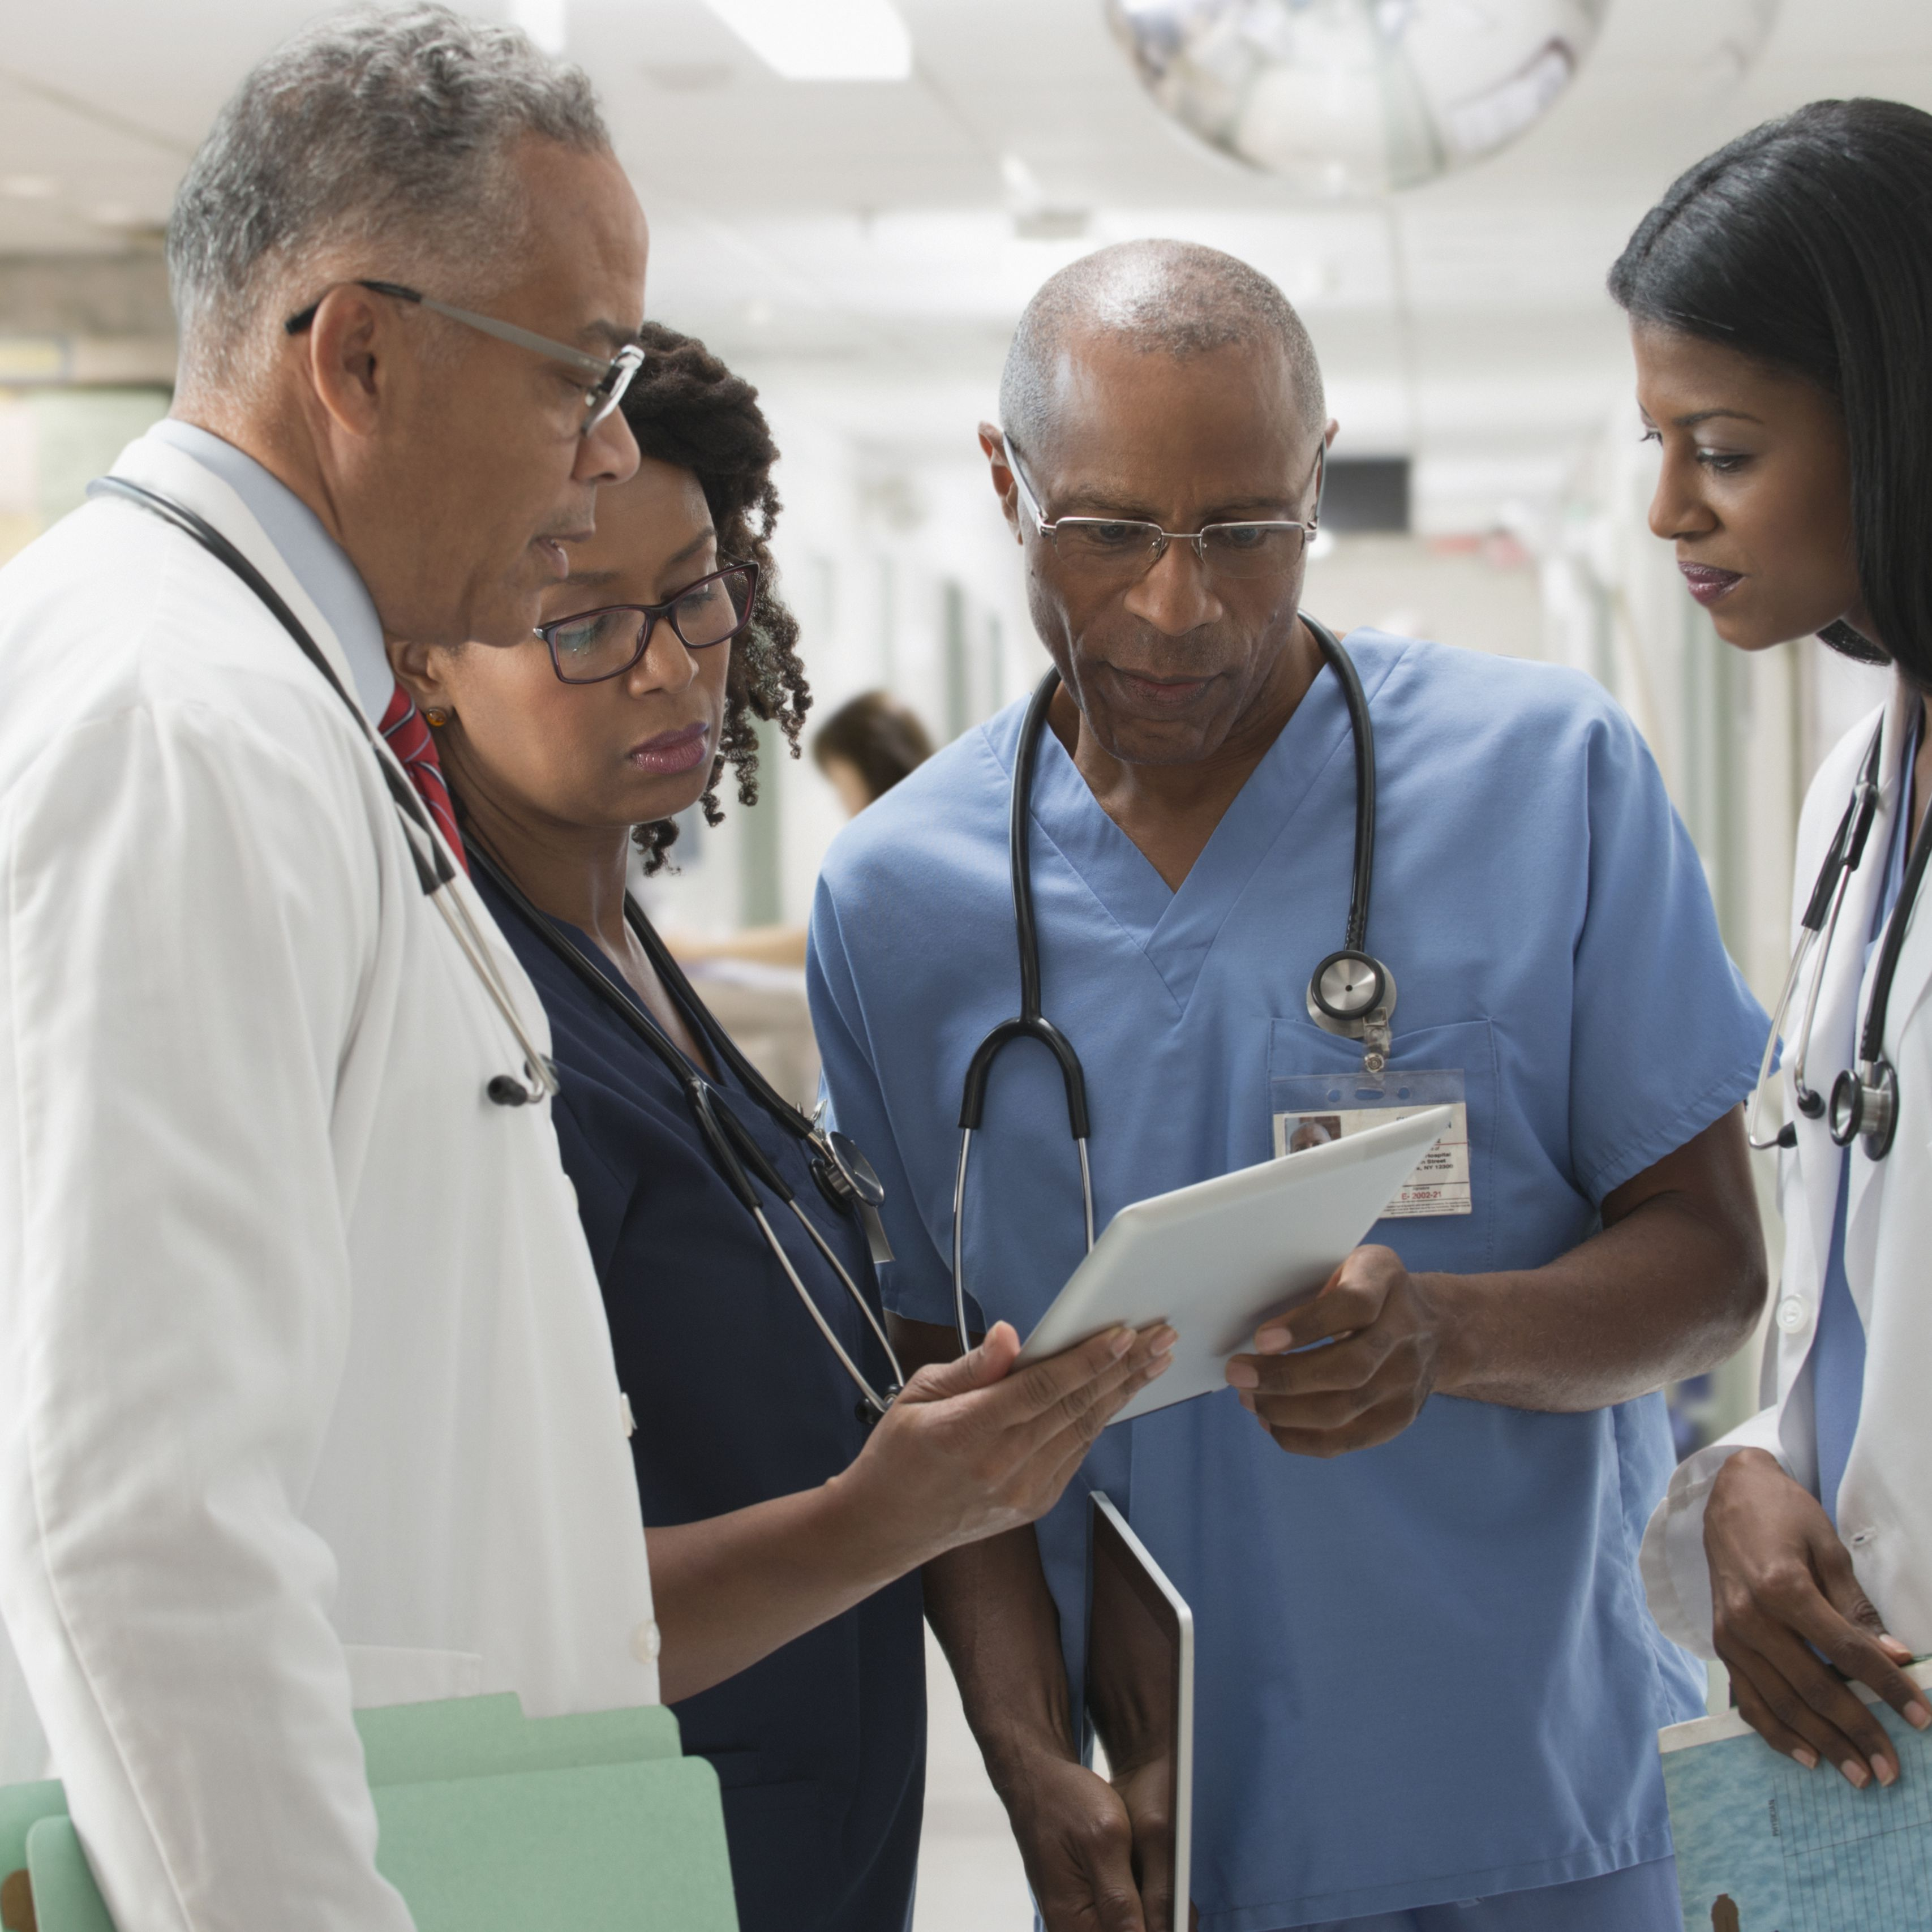 Who Are Doctors, Residents, Interns, and Attendings?